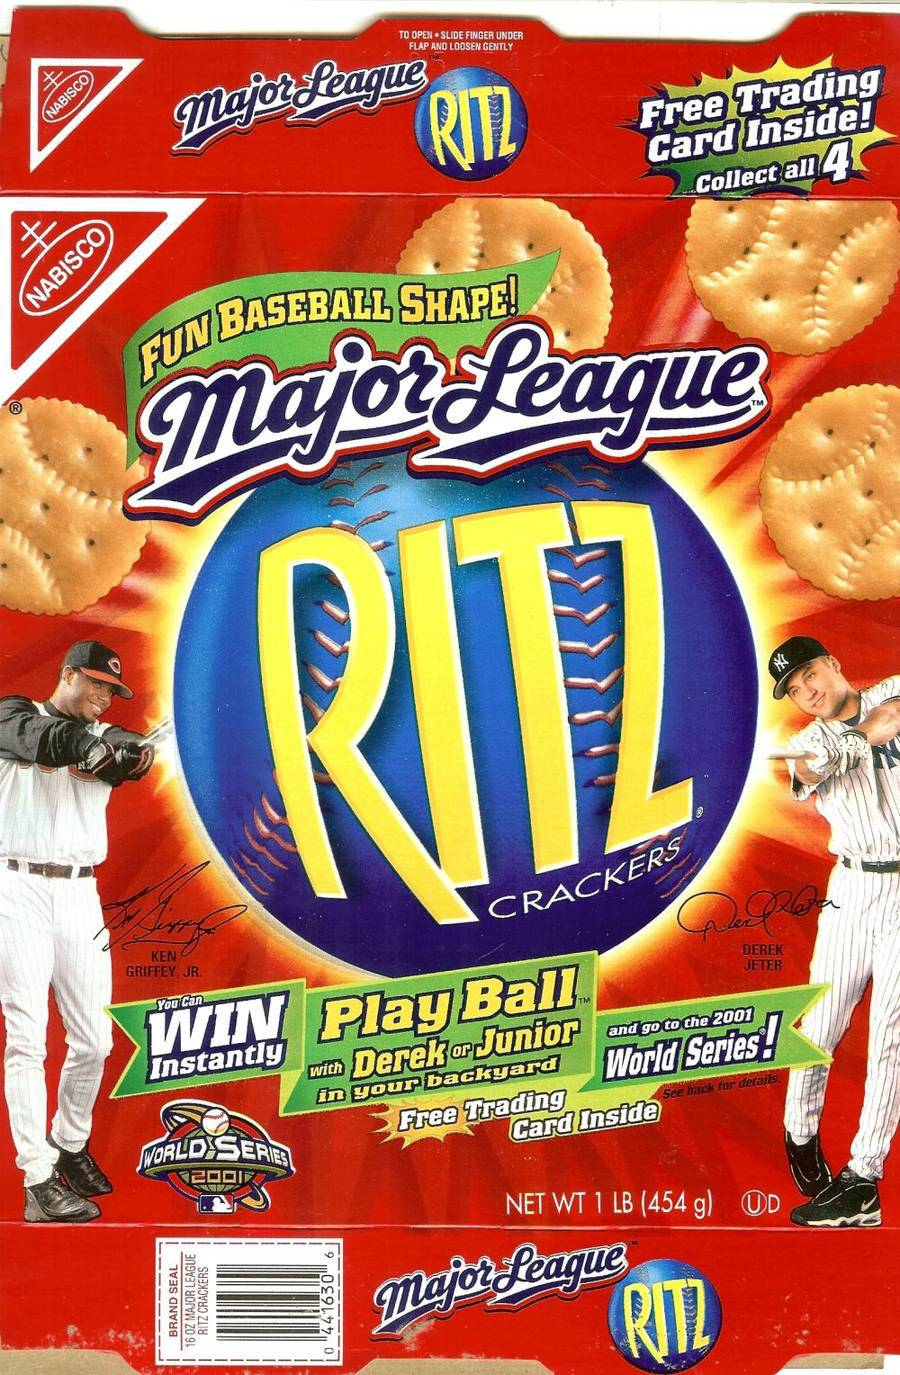 Primary image for ritz crackers box ken griffey jr derek jeter baseball card sealed inside 2001